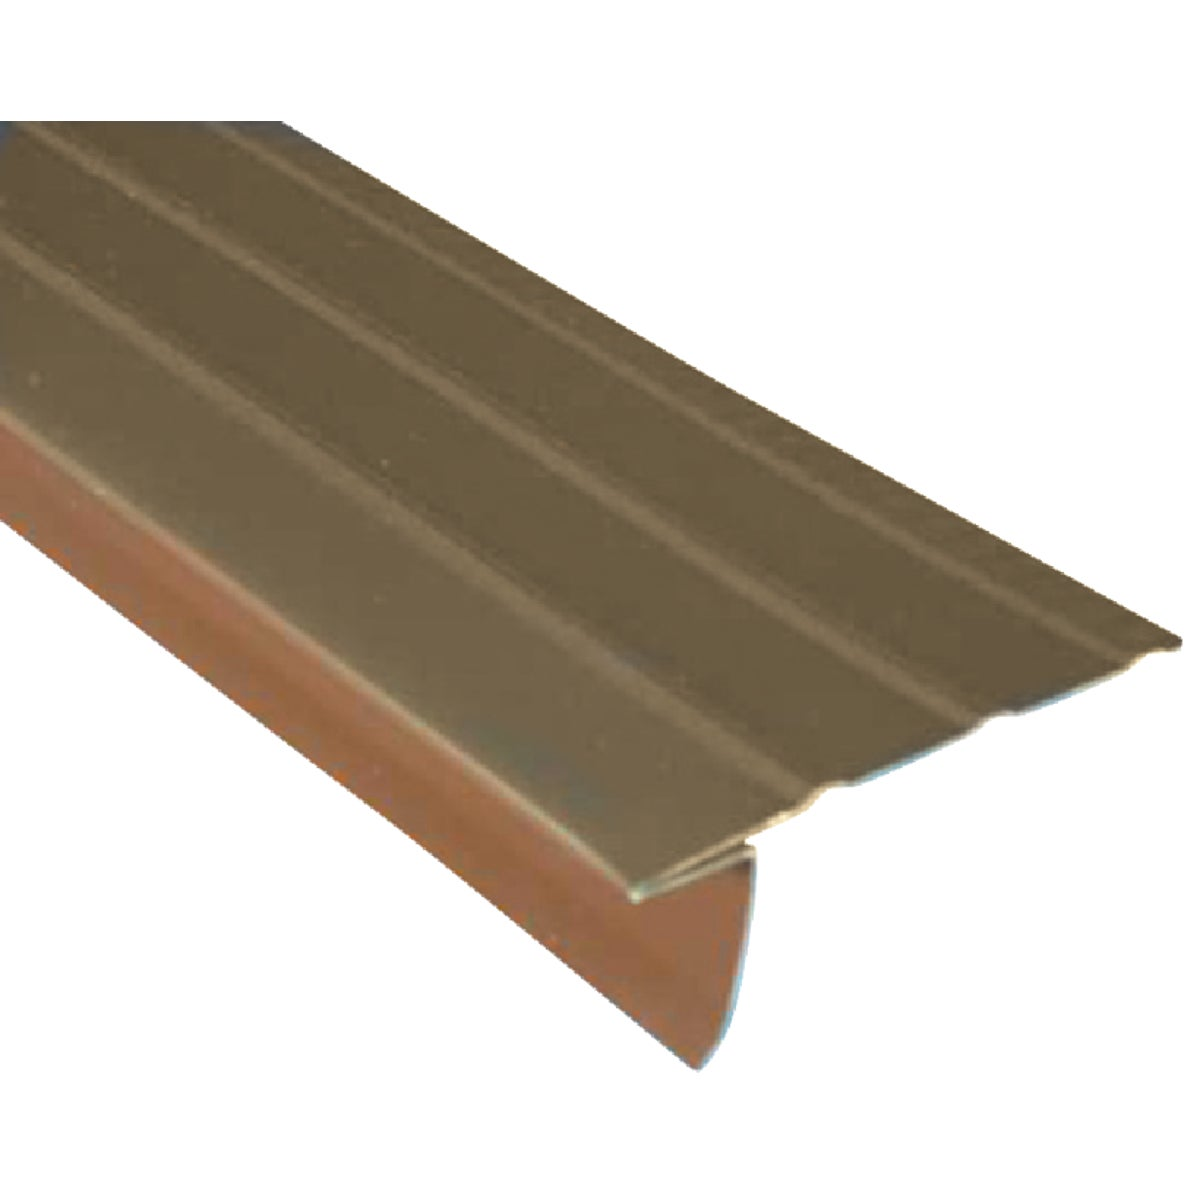 "5"" BROWN DRIP EDGE - 5505519120 by Amerimax Home Prod"